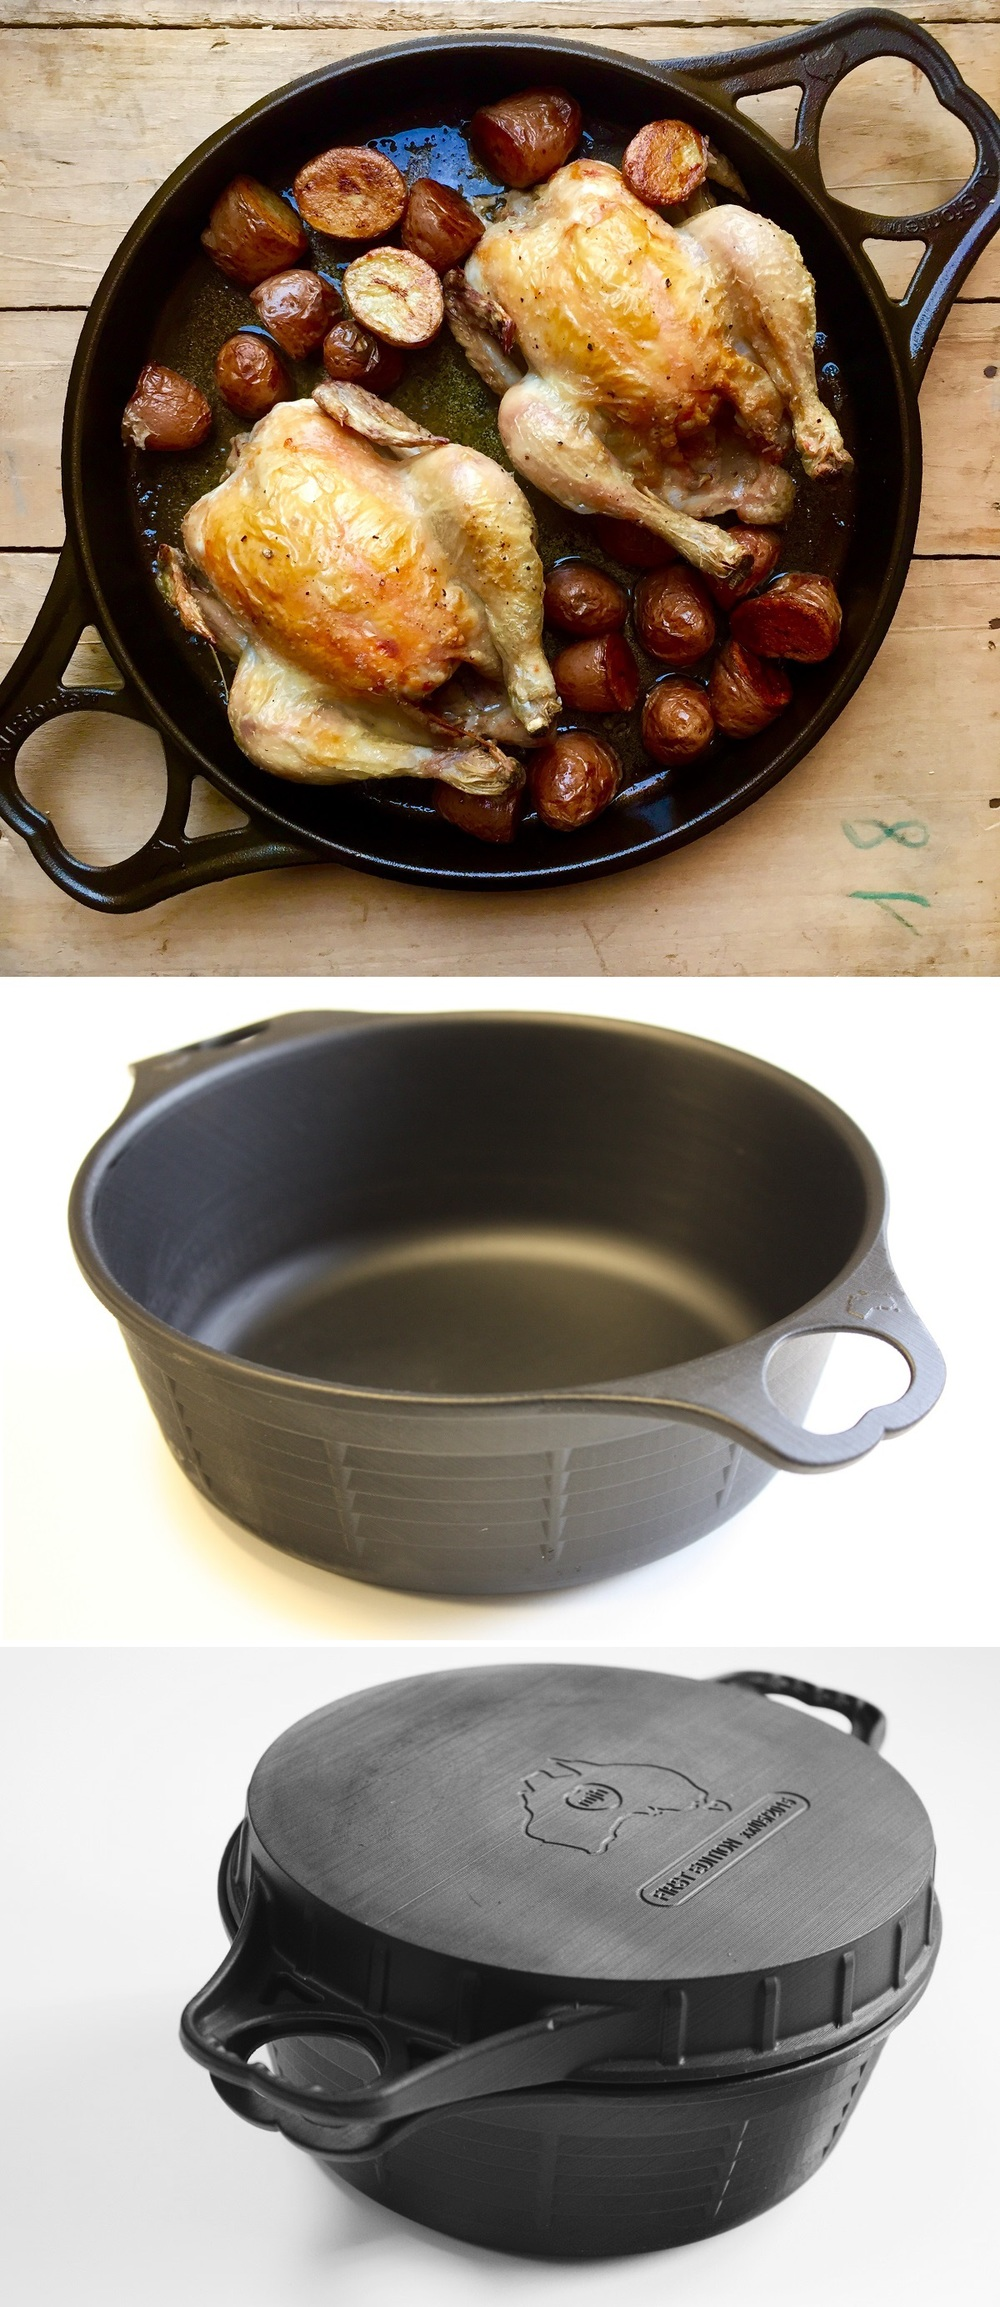 Two seriously innovative Australian-made cast iron pans: the AUSfonte 32cm BIGskillet (top) and 32cm, 7 Litre, DEEPan (middle),  which fit together as a base and lid (bottom) . This is the only time they will be offered as limited FIRST EDITION castings.  Only until Feb 17, 2015.     Only on Kickstarter.